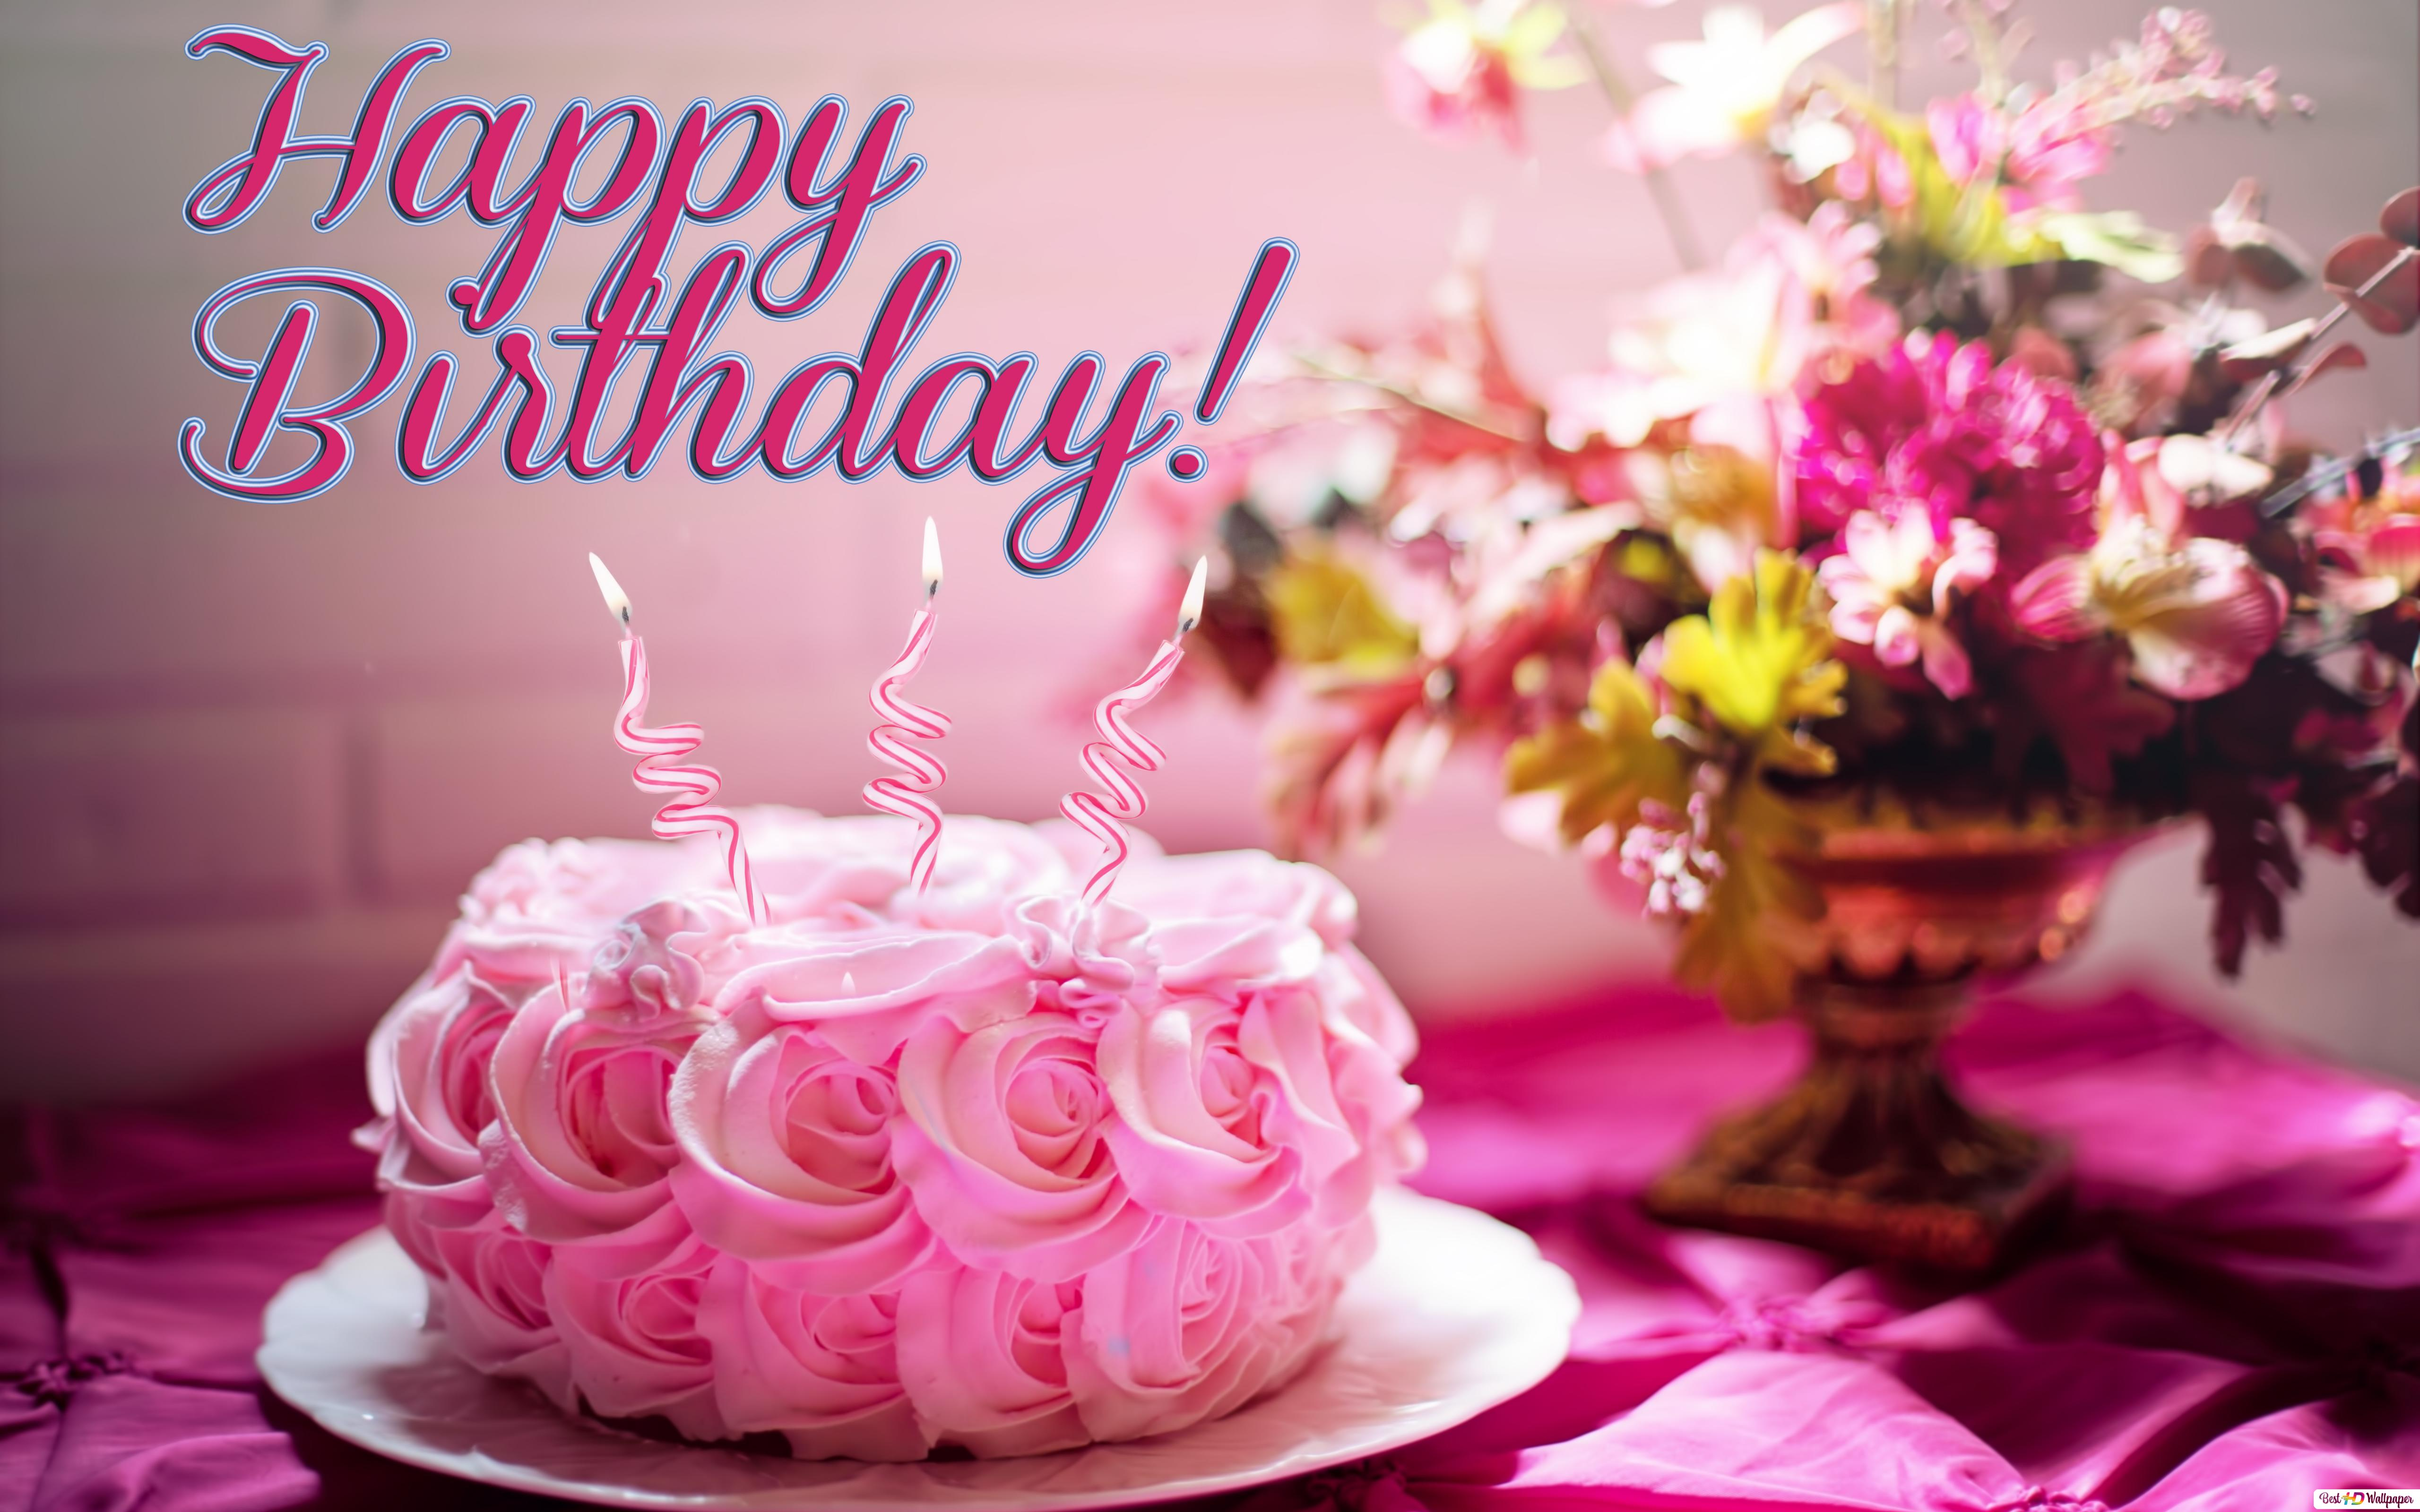 Surprising Happy Birthday Pink Cake And Helix Candle Hd Wallpaper Download Personalised Birthday Cards Paralily Jamesorg